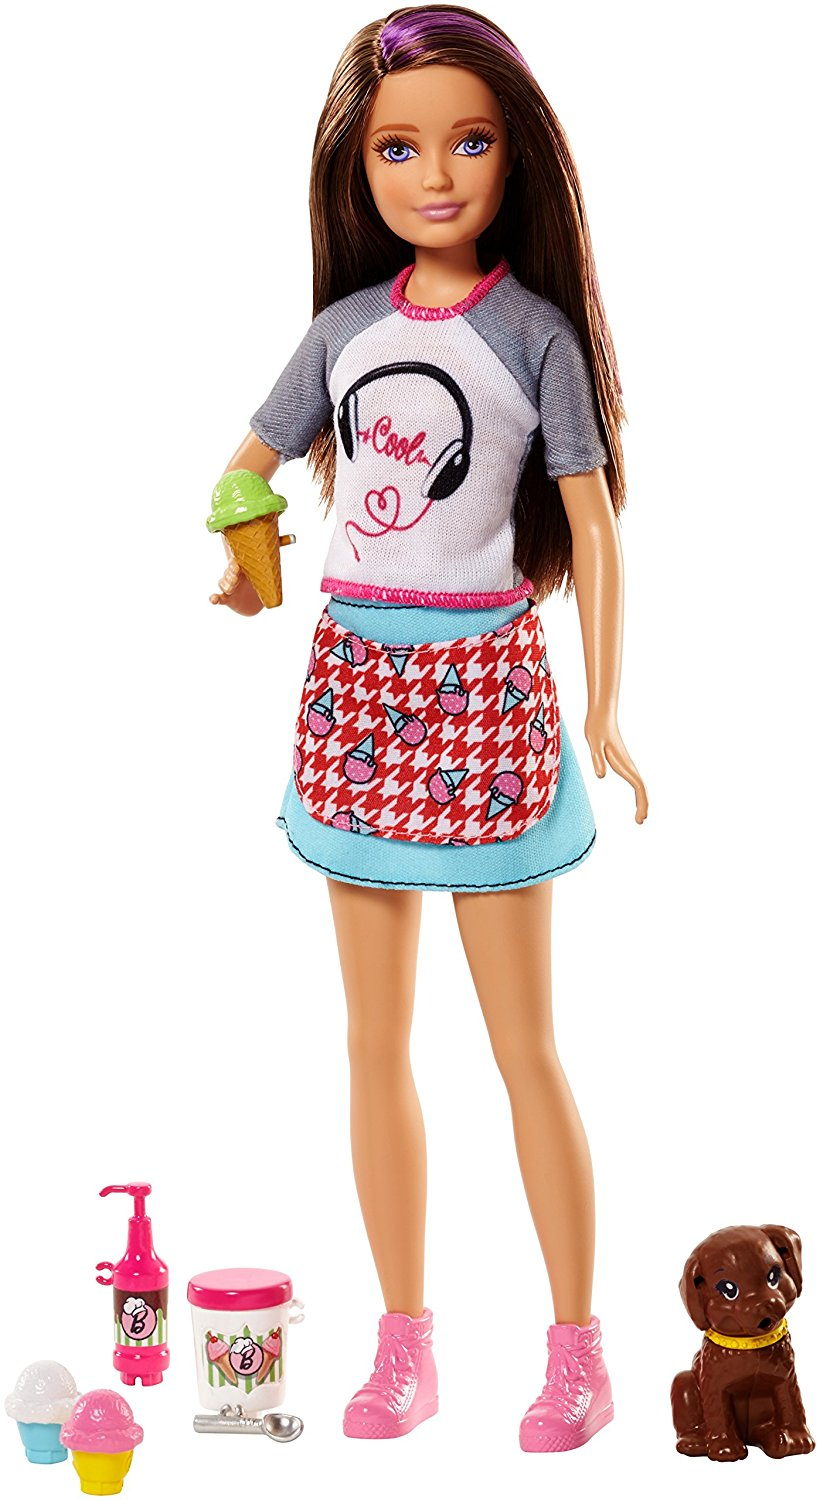 Barbie Sister Skipper Doll with ice cream